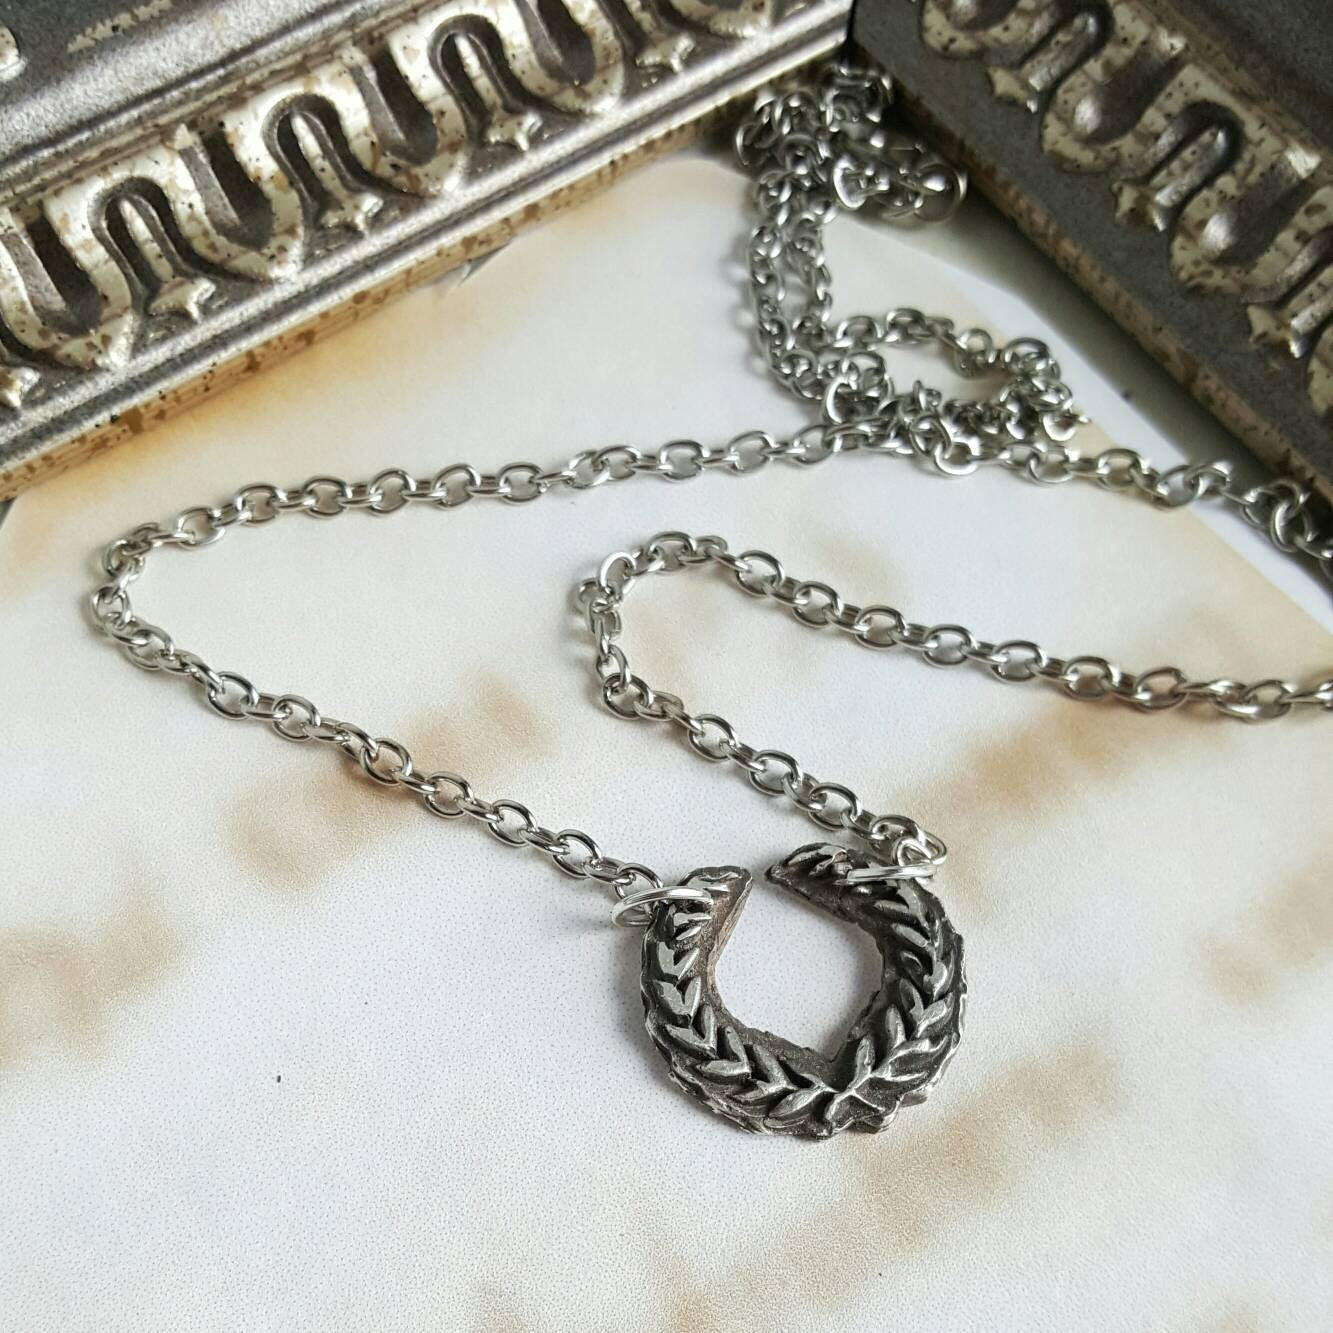 Laurel Crown Necklace 925 Sterling Silver Necklace - DRAVYNMOOR